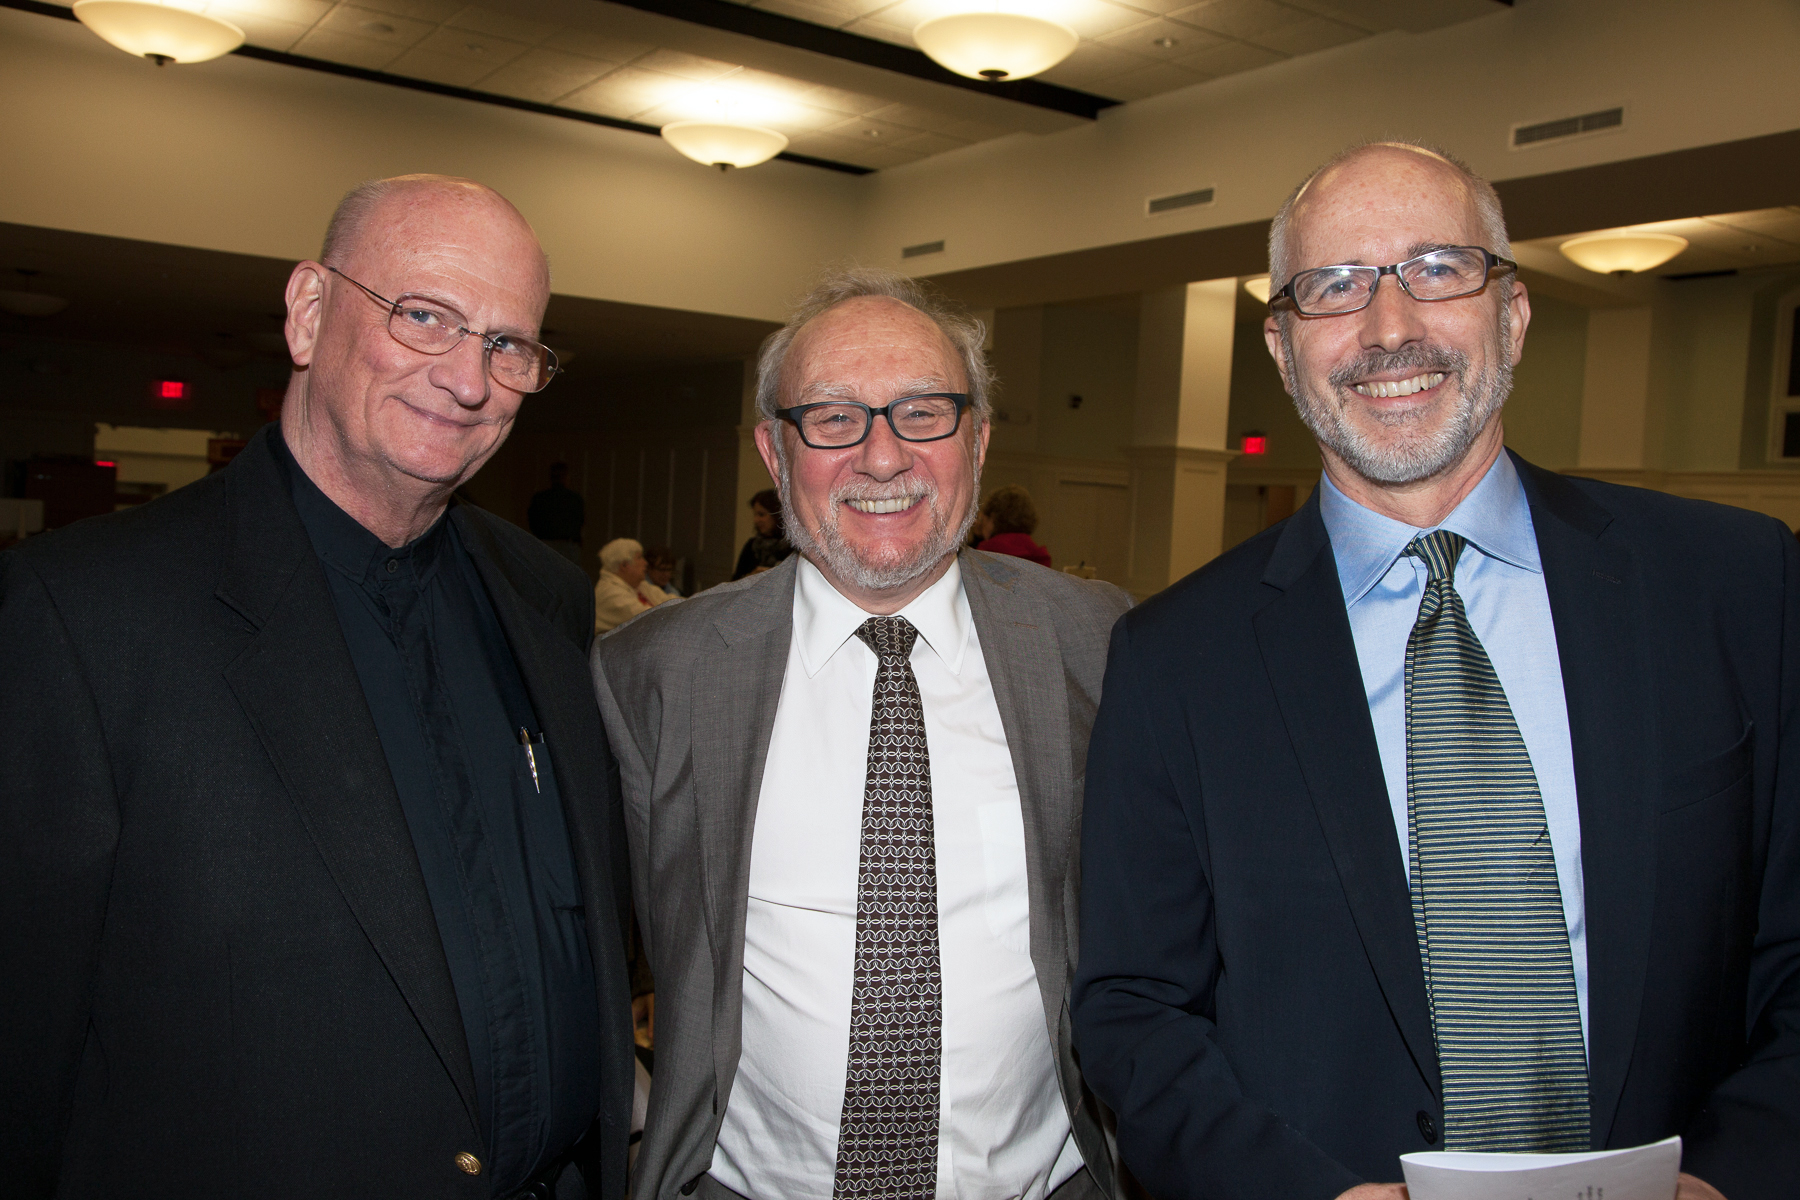 """L-R Monsignor Alan F. Detscher, STD, pastor of St. Catherine of Siena Parish, Riverside, Conn., who co-hosted the evening event, with Dr. Mark Silk of Trinity College, Hartford, Conn., a panelist and RNS """"Spiritual Politics"""" columnist, with RNS National Correspondent David Gibson, who moderated the Dec. 7, 2016, """"Election Aftermath: Faith & the Common Good"""" panel discussion."""